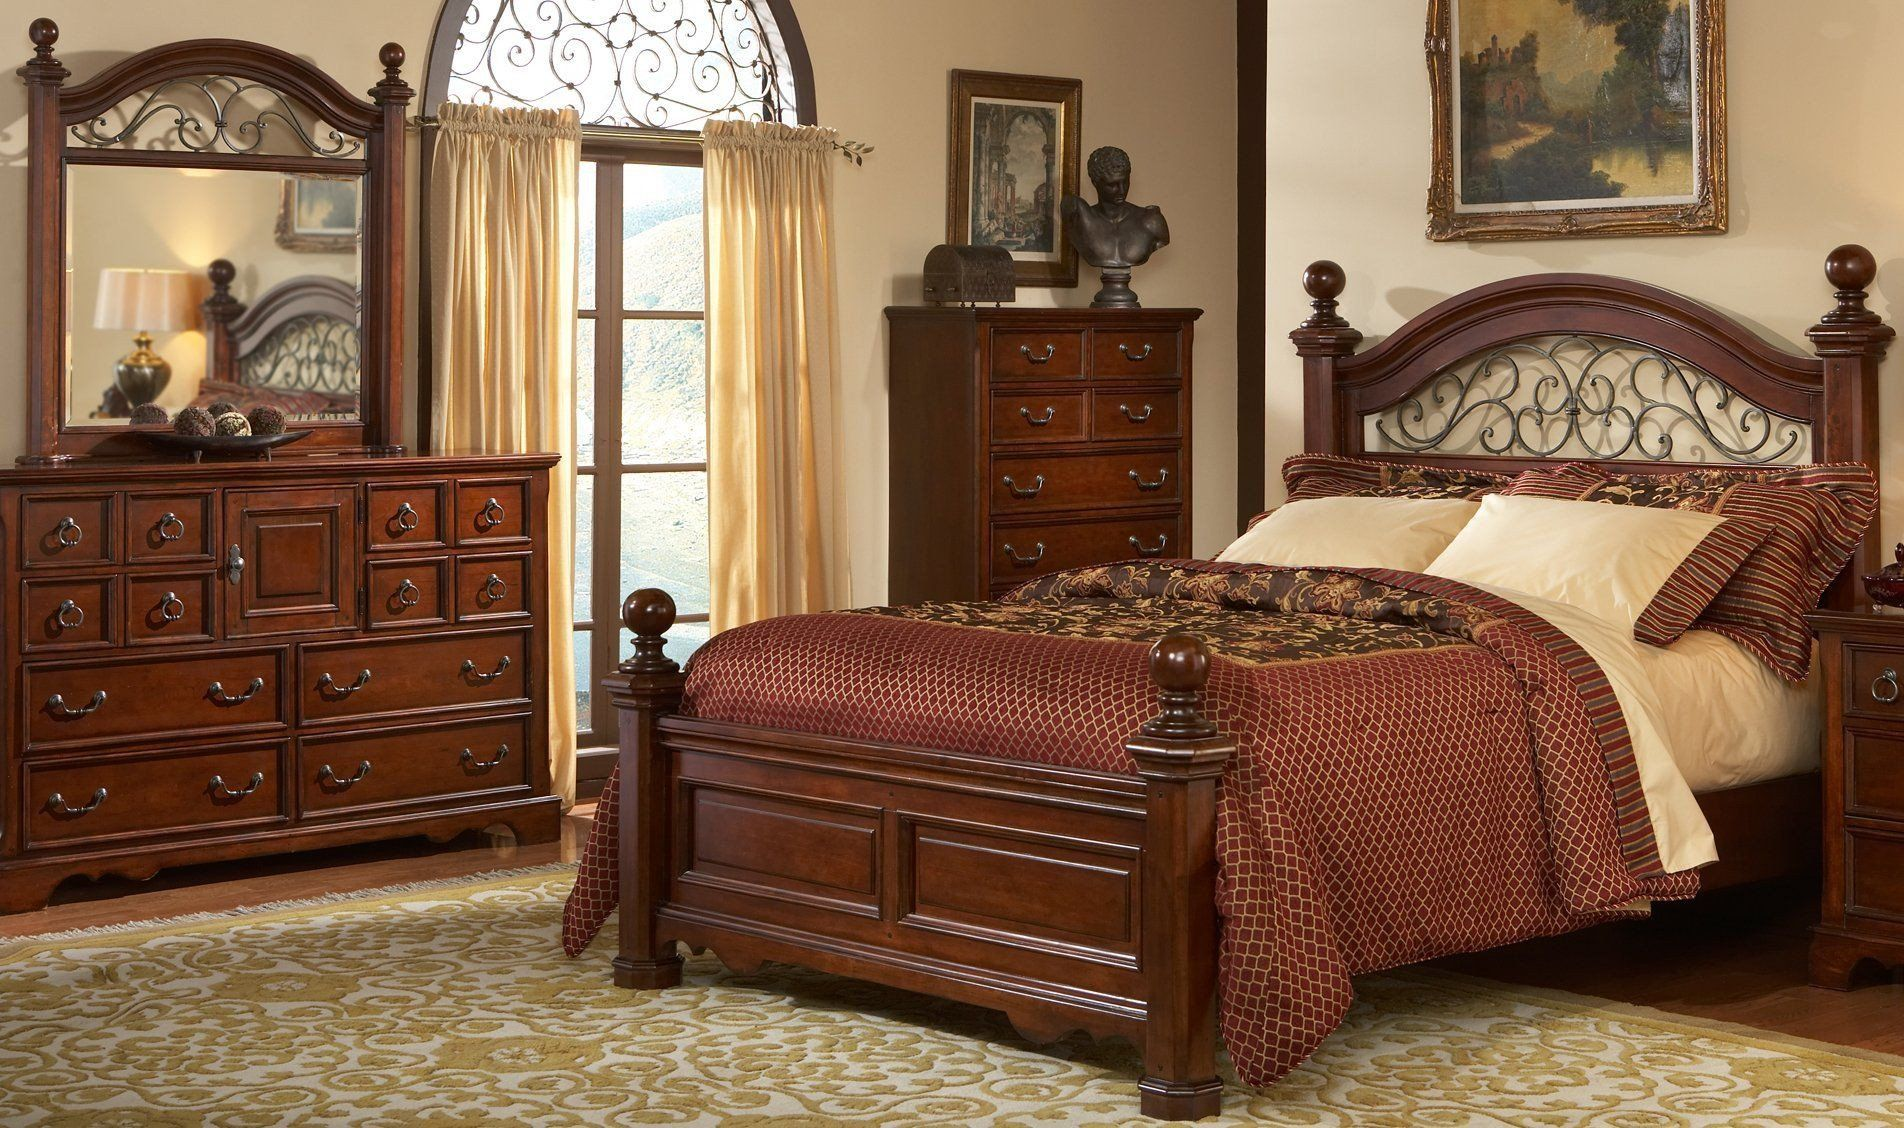 Wrought Iron Bedroom Set Wrought Iron And Wood Bedroom Sets In 2020 Wood Bedroom Sets Bedroom Sets Metal Bedroom Furniture